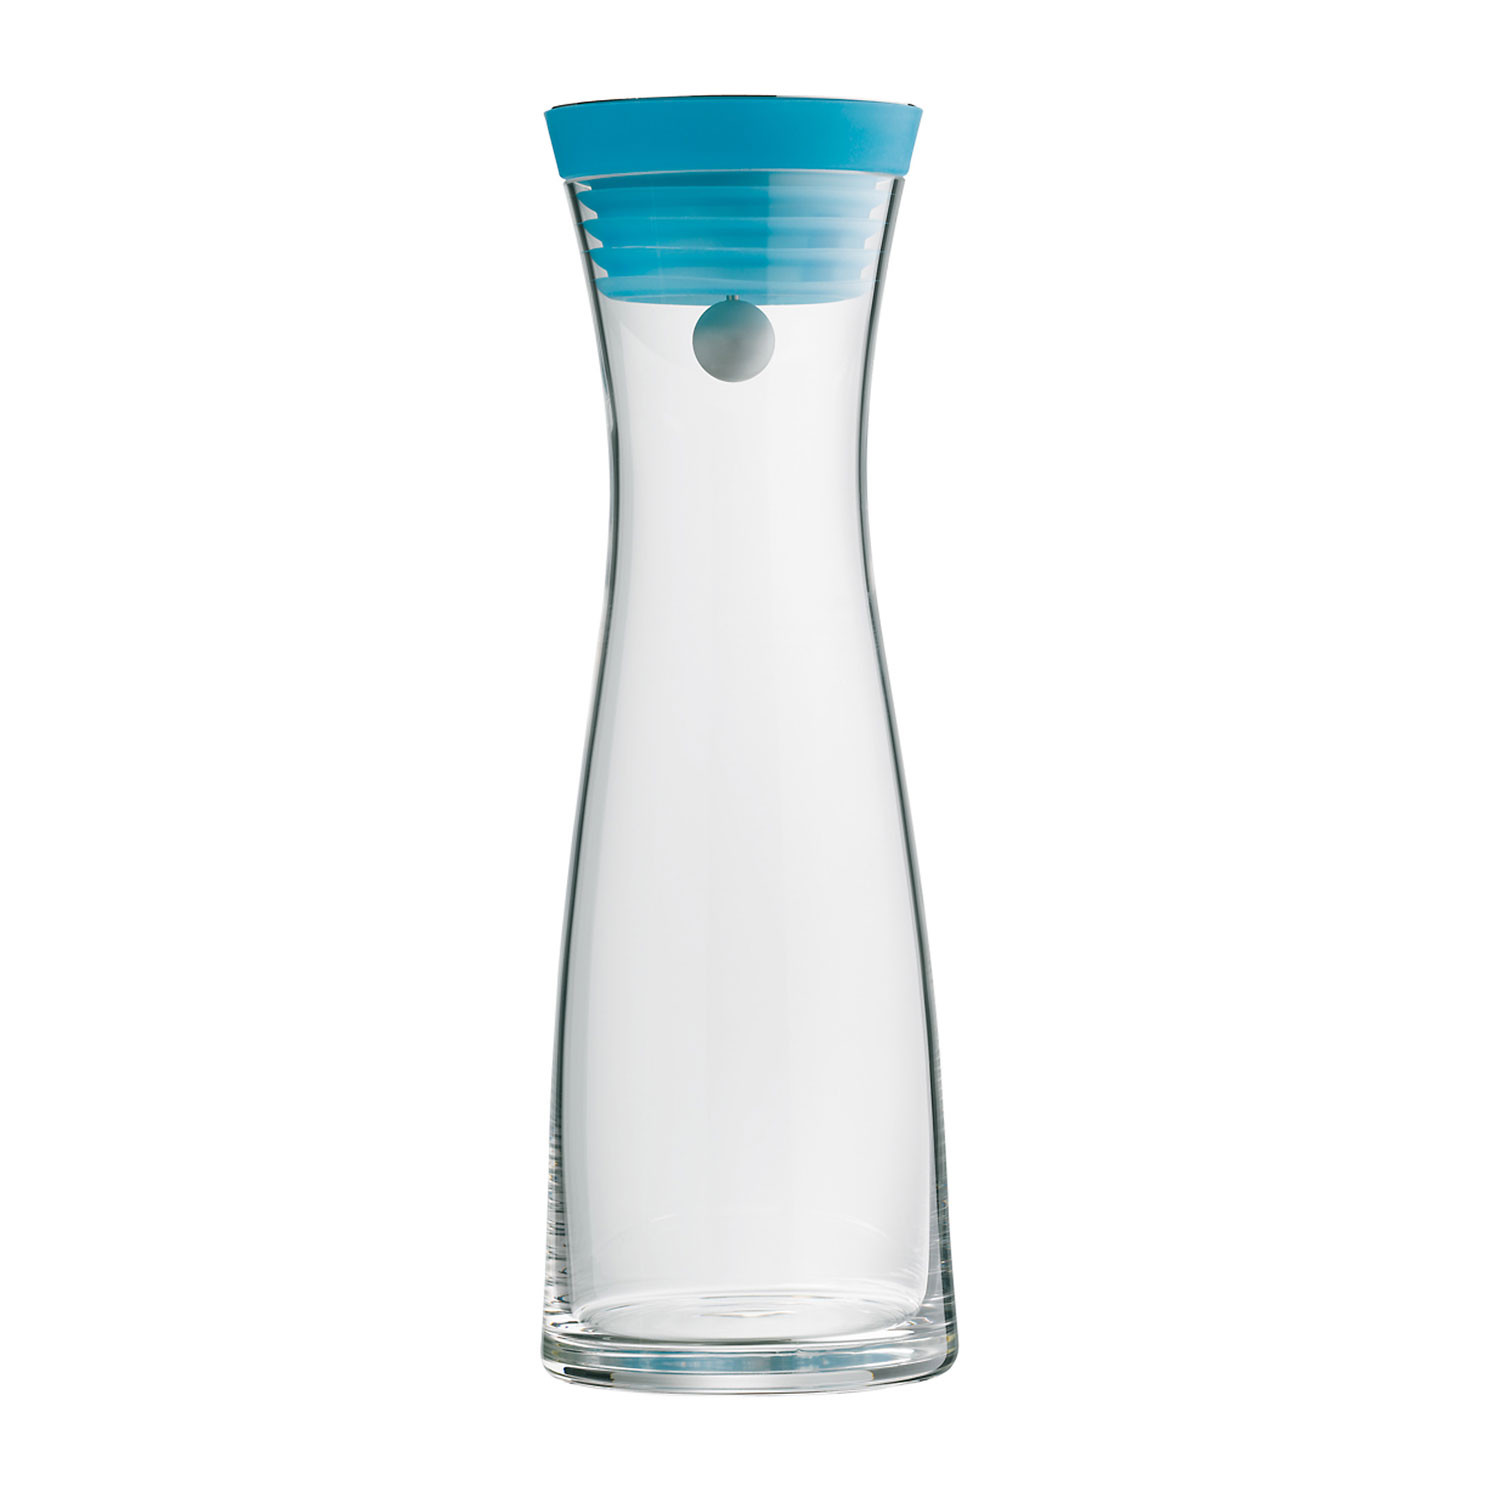 water carafe w blue top  wmf tabletop  touch of modern - water carafe w blue top